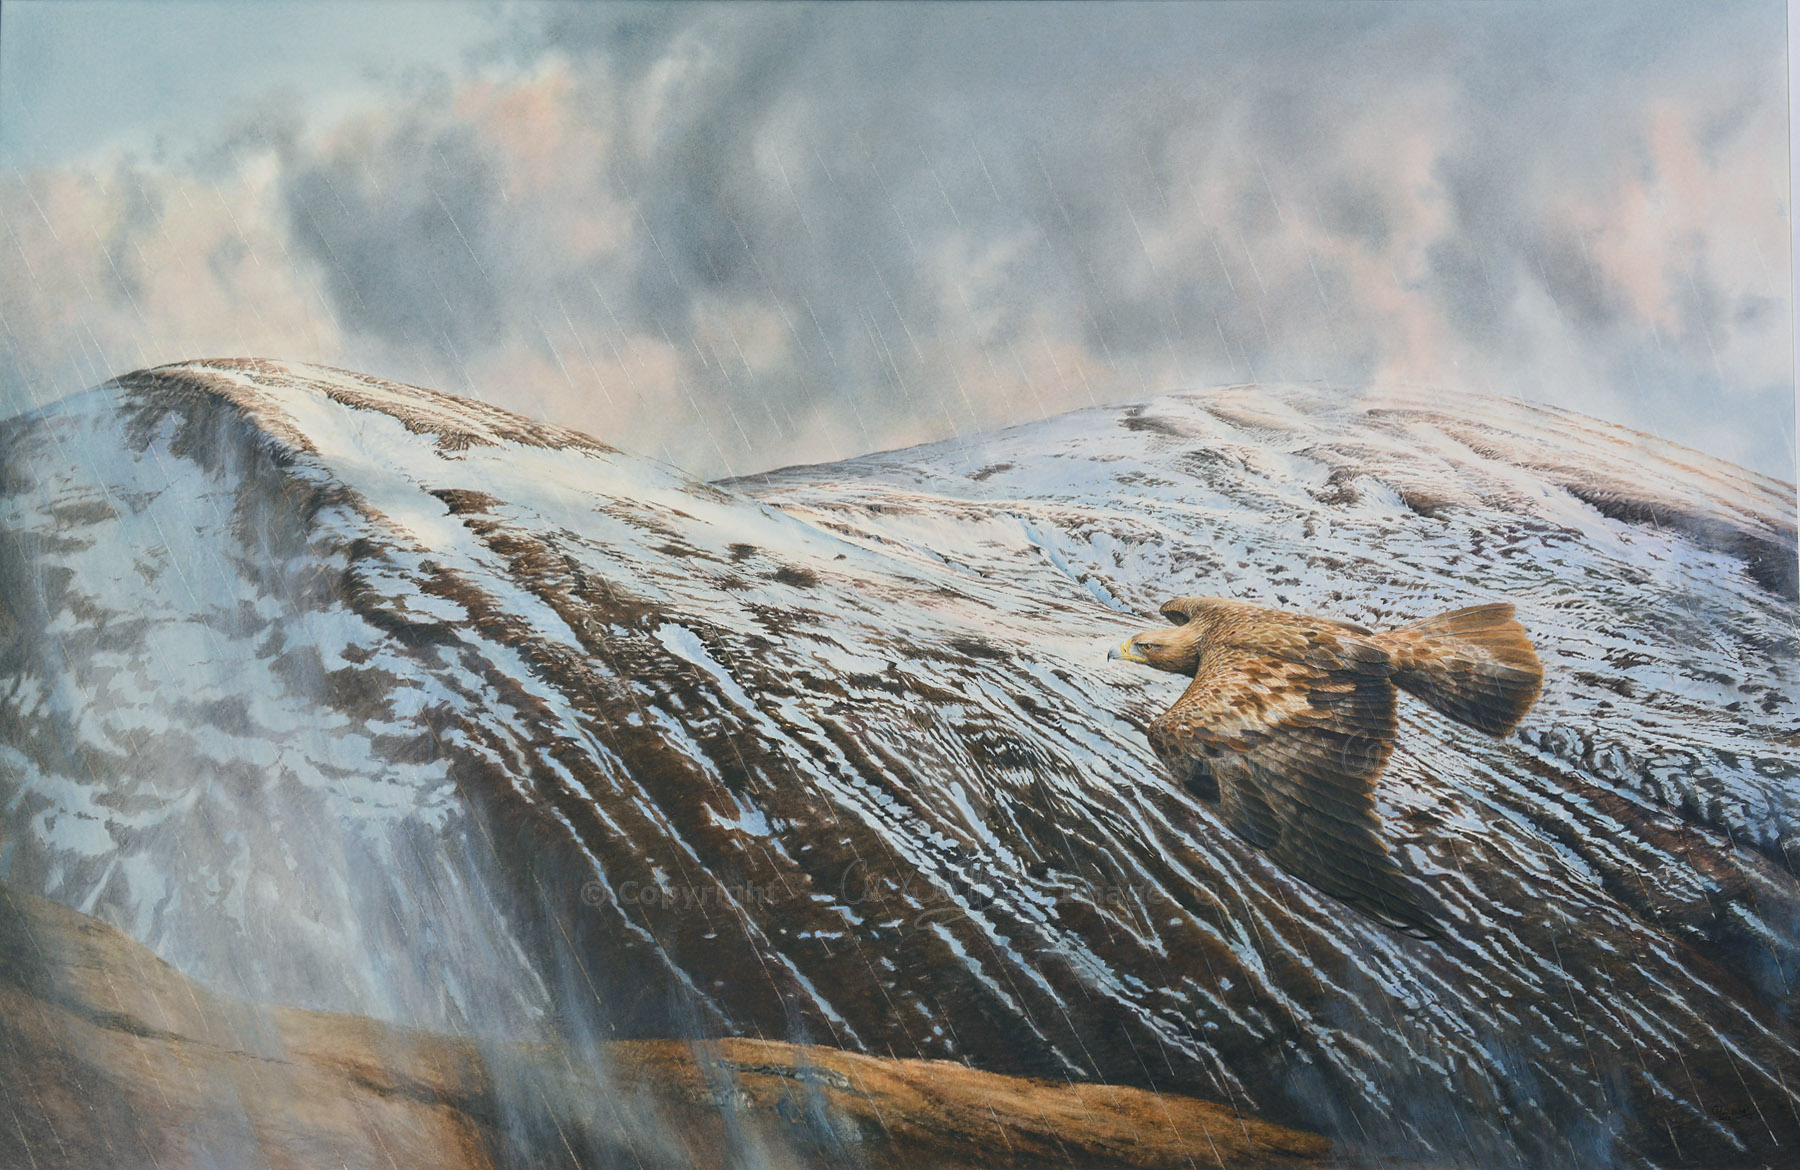 Golden eagle by Colin Woolf (5)